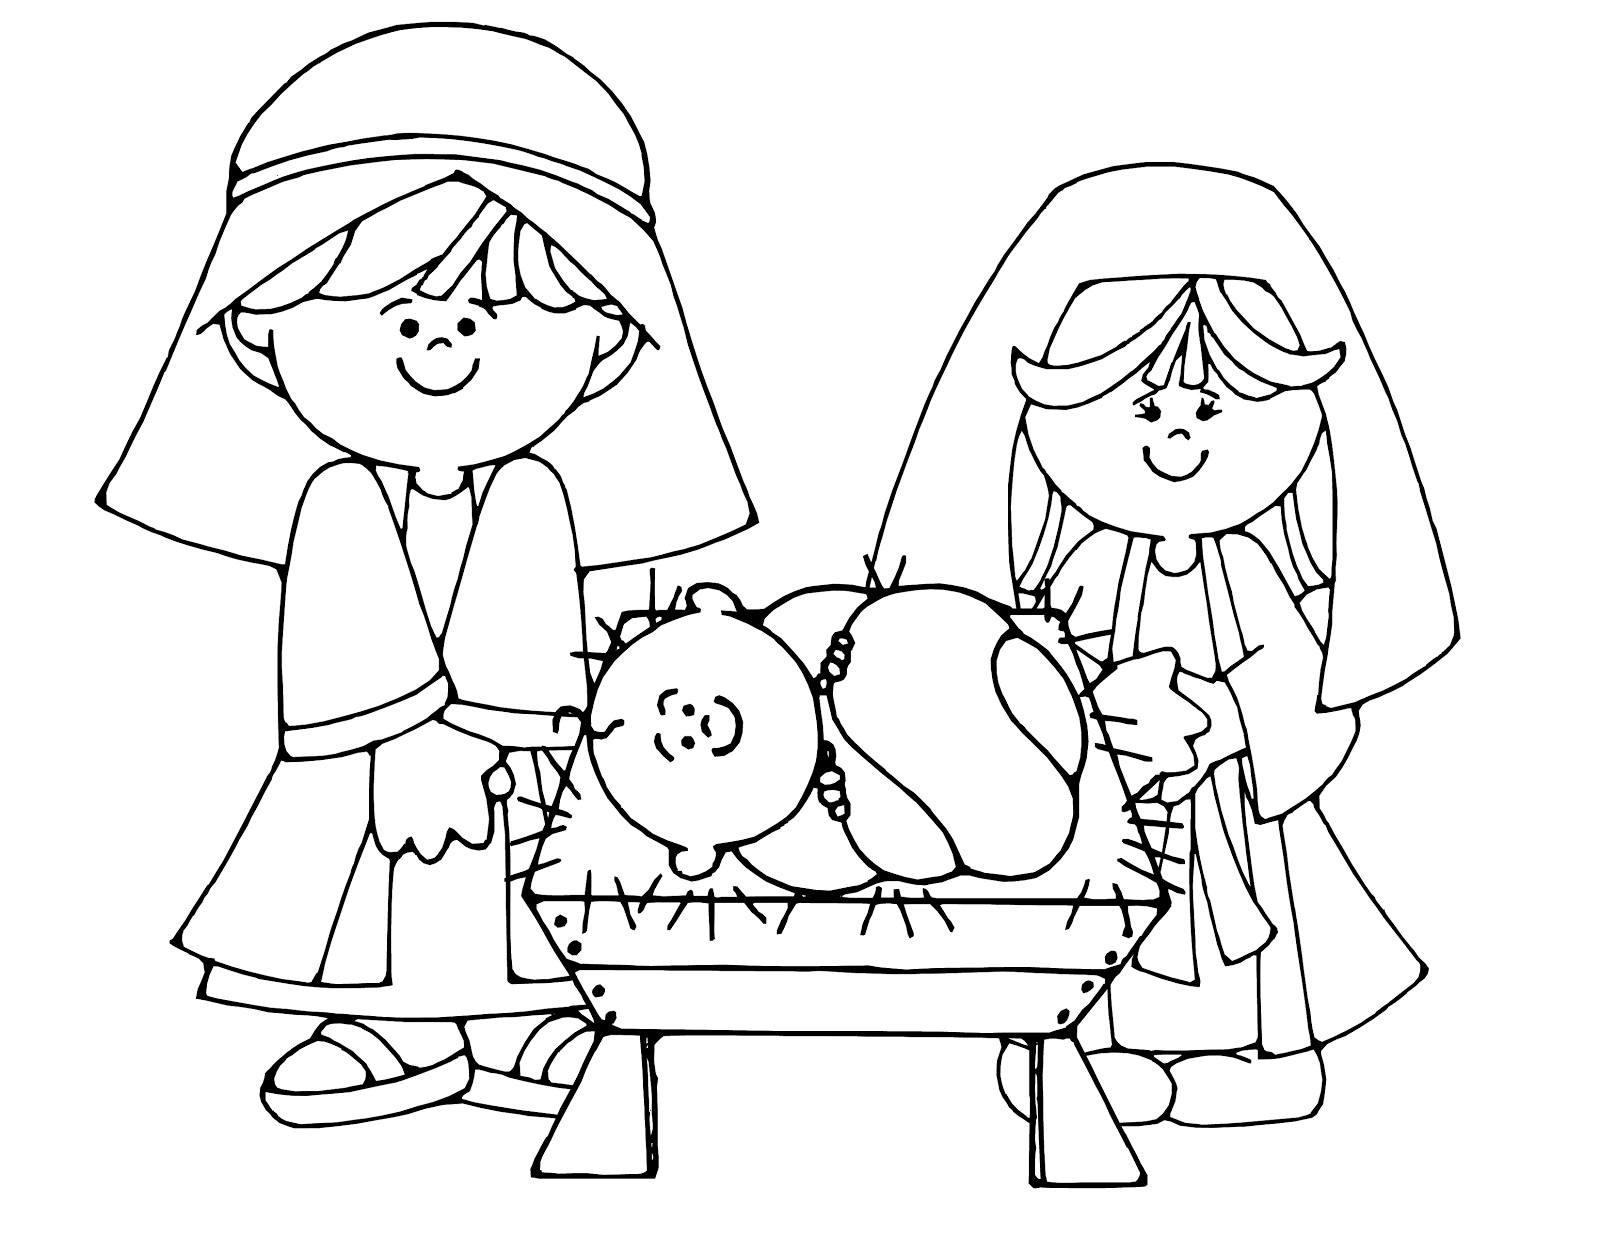 Simple Nativity Scene Colouring Page Nativity Coloring Jesus Coloring Pages Nativity Coloring Pages